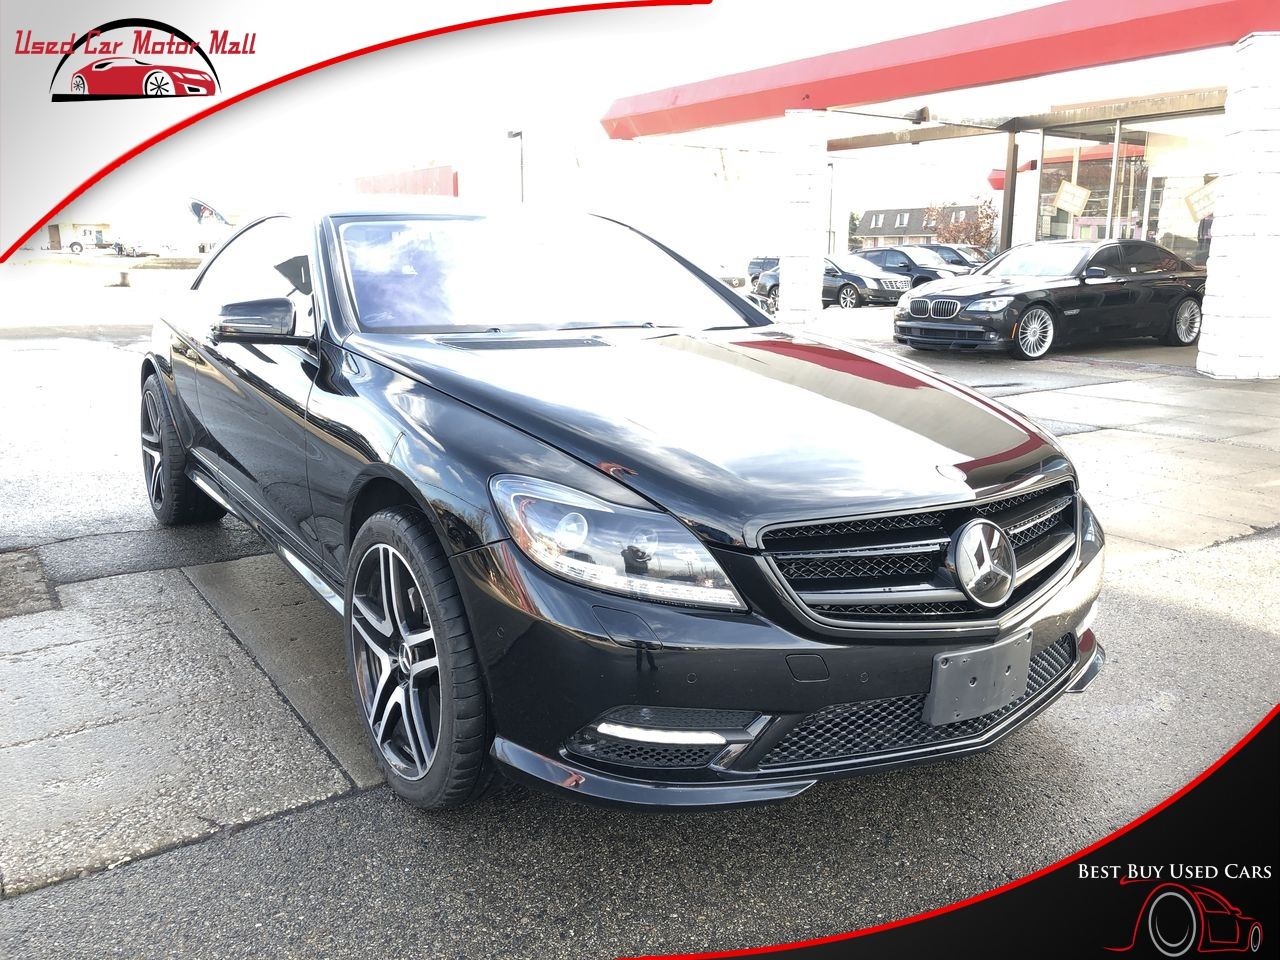 2012 Honda Accord Coupe EX-L, 008804, Photo 1